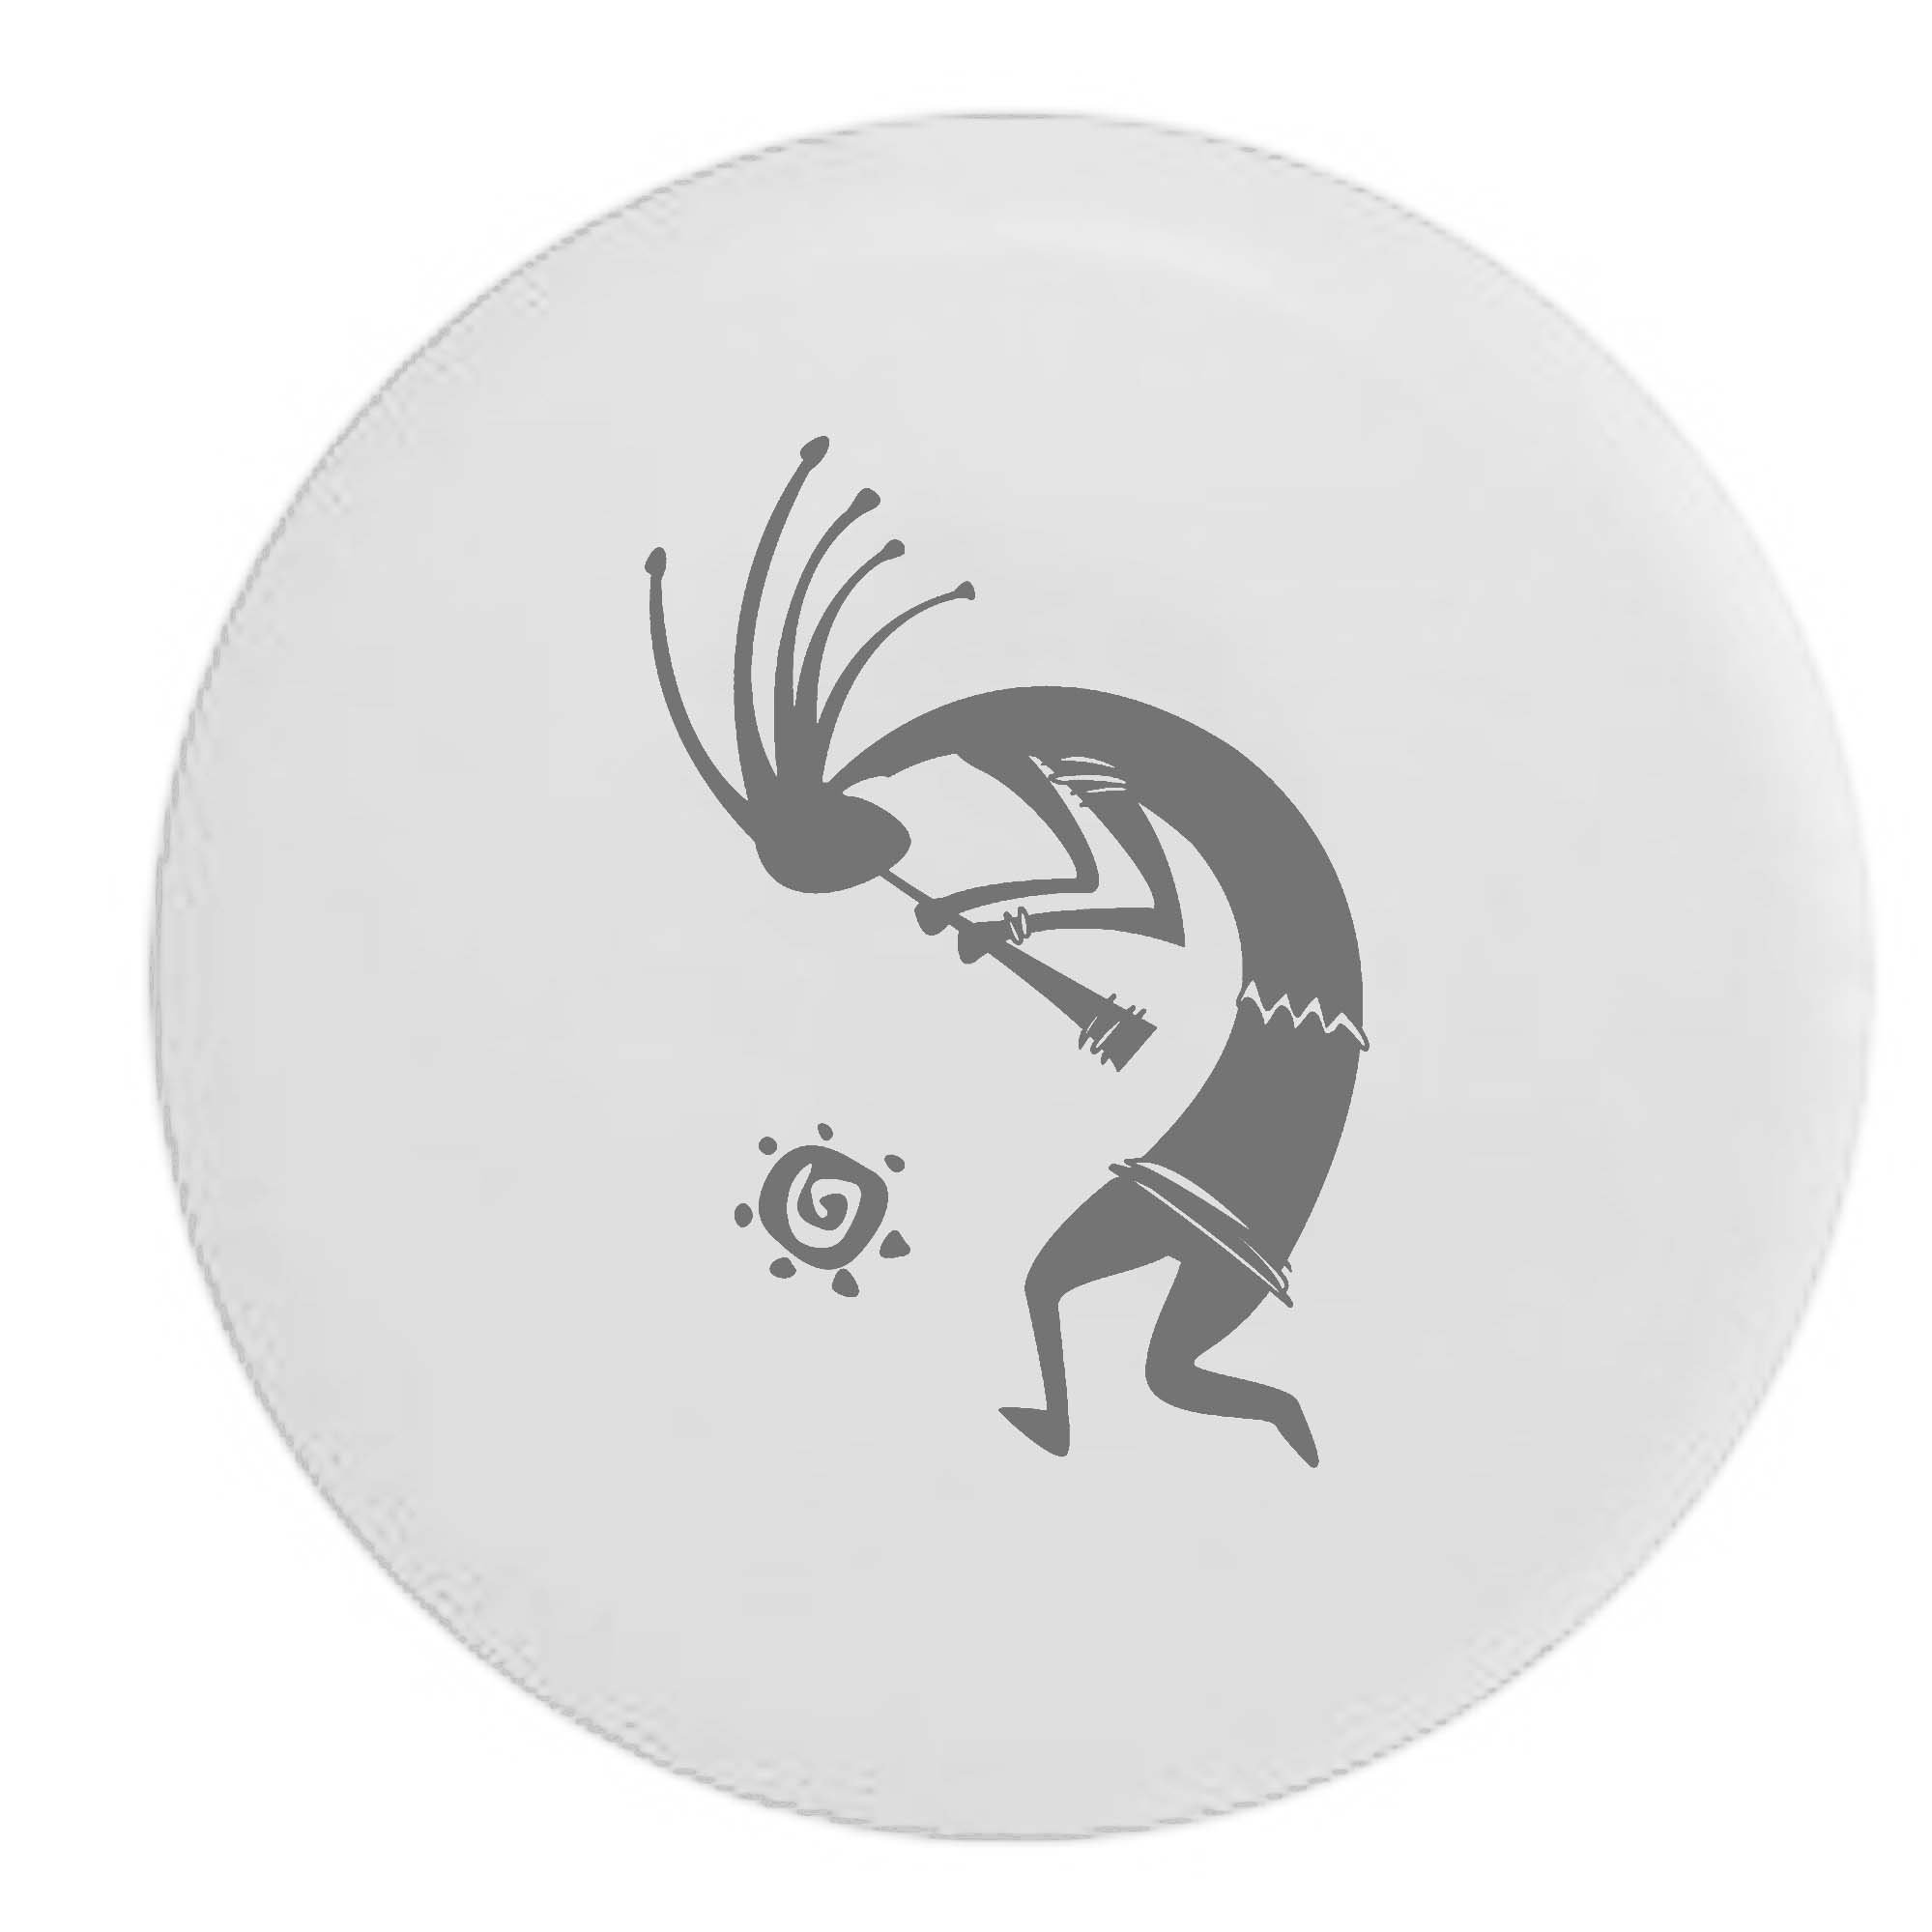 Pike Kokopelli Flute Tribal Sun Trailer RV Spare Tire Cover OEM Vinyl White 30 in by Pike Outdoors